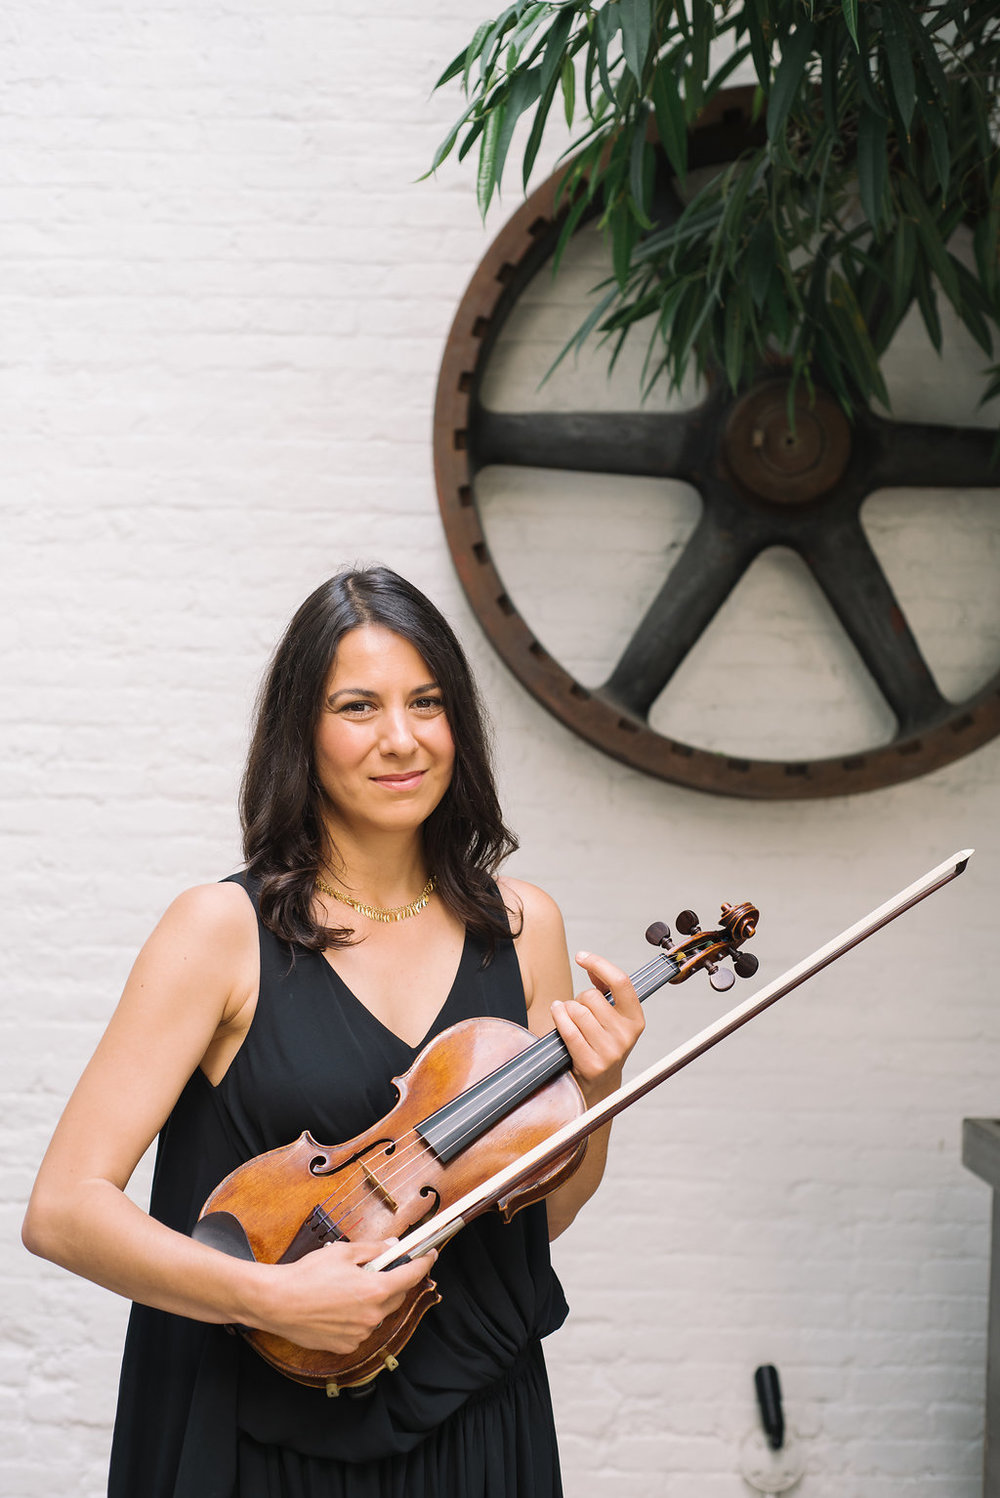 Copy of Erica Dicker - Violin